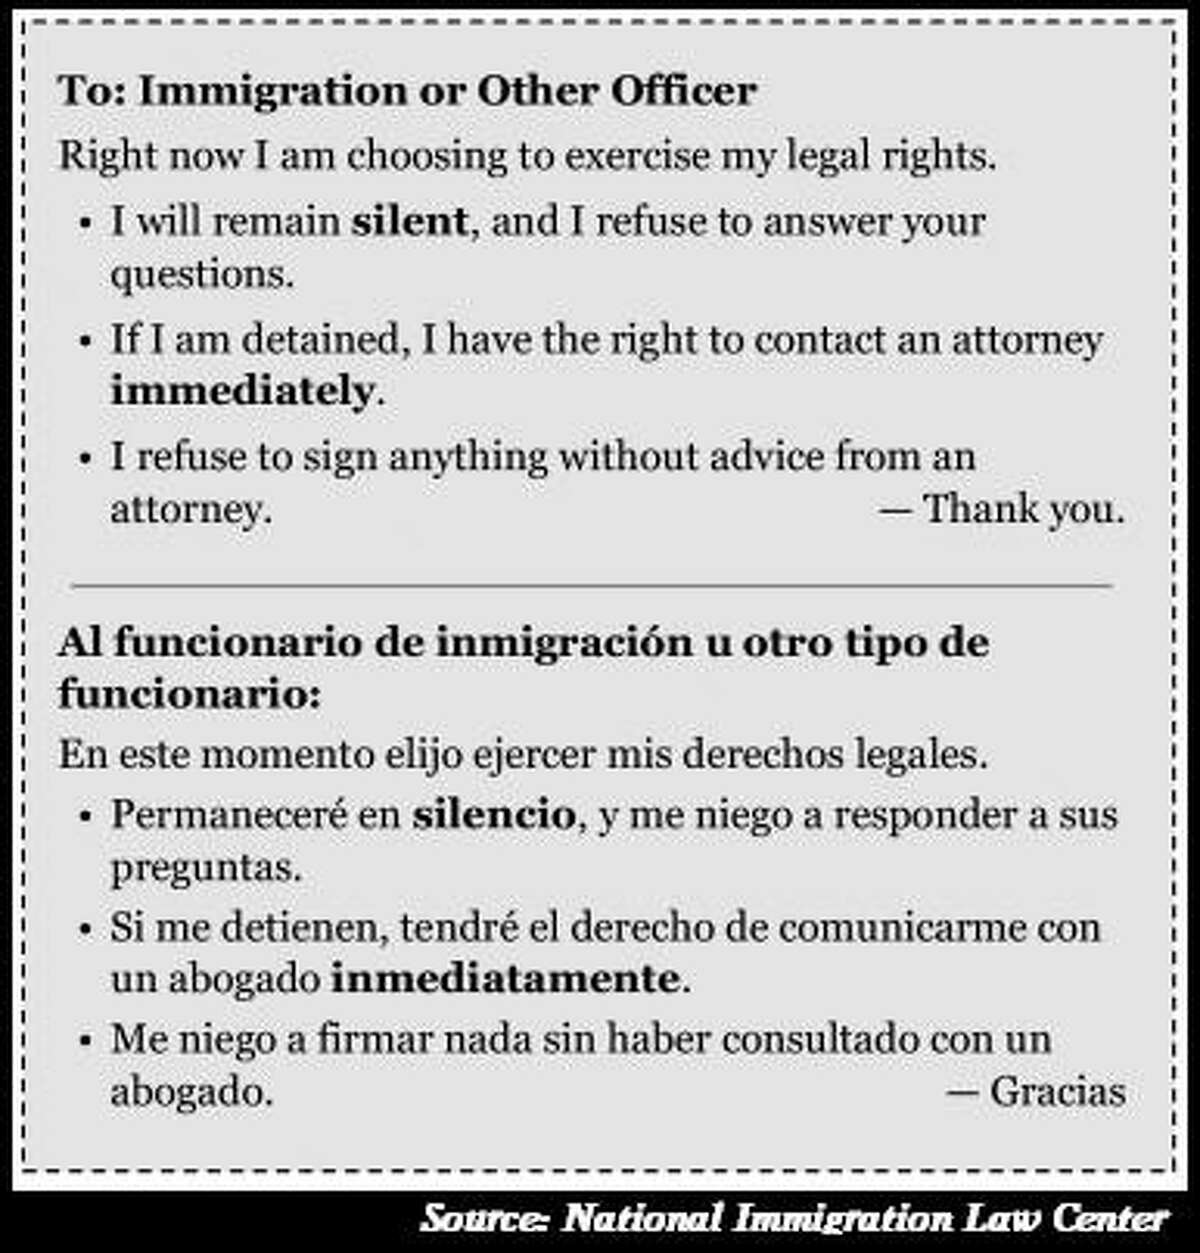 In Spanish: What to say to ICE or other officers, courtesy the National Immigration Law Center.